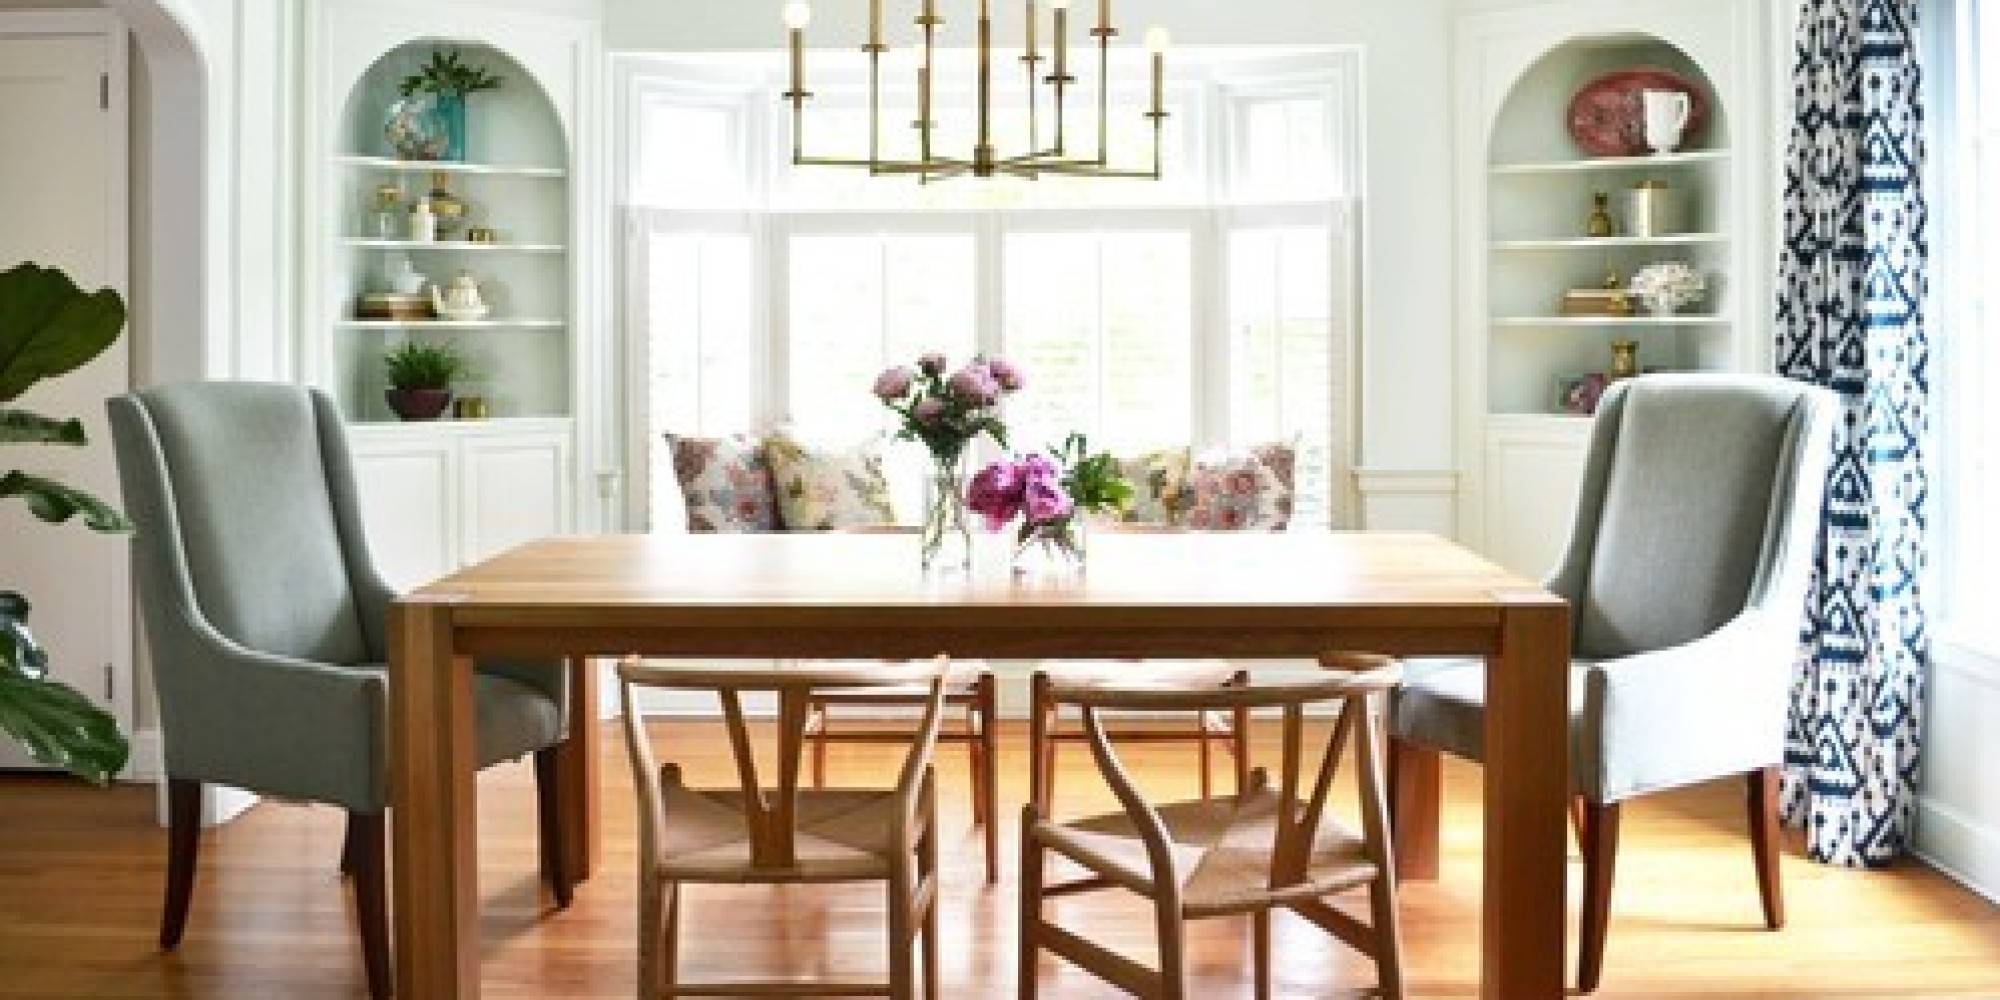 How to Determine Your Decorating Style | HuffPost